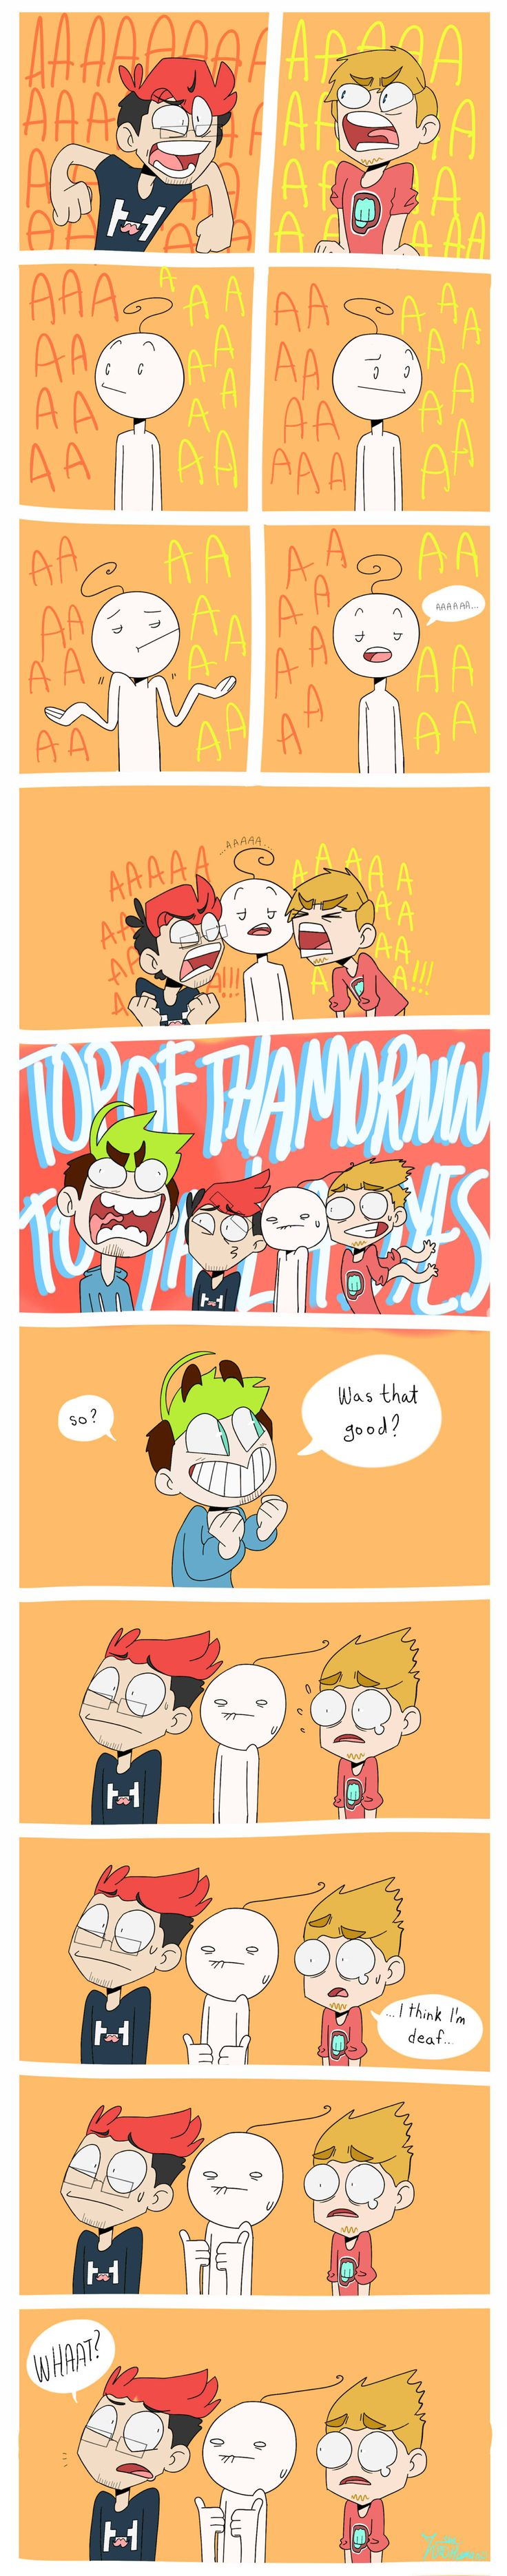 Jacksepticeye, Markiplier, Cryaotic, and Pewdiepie.